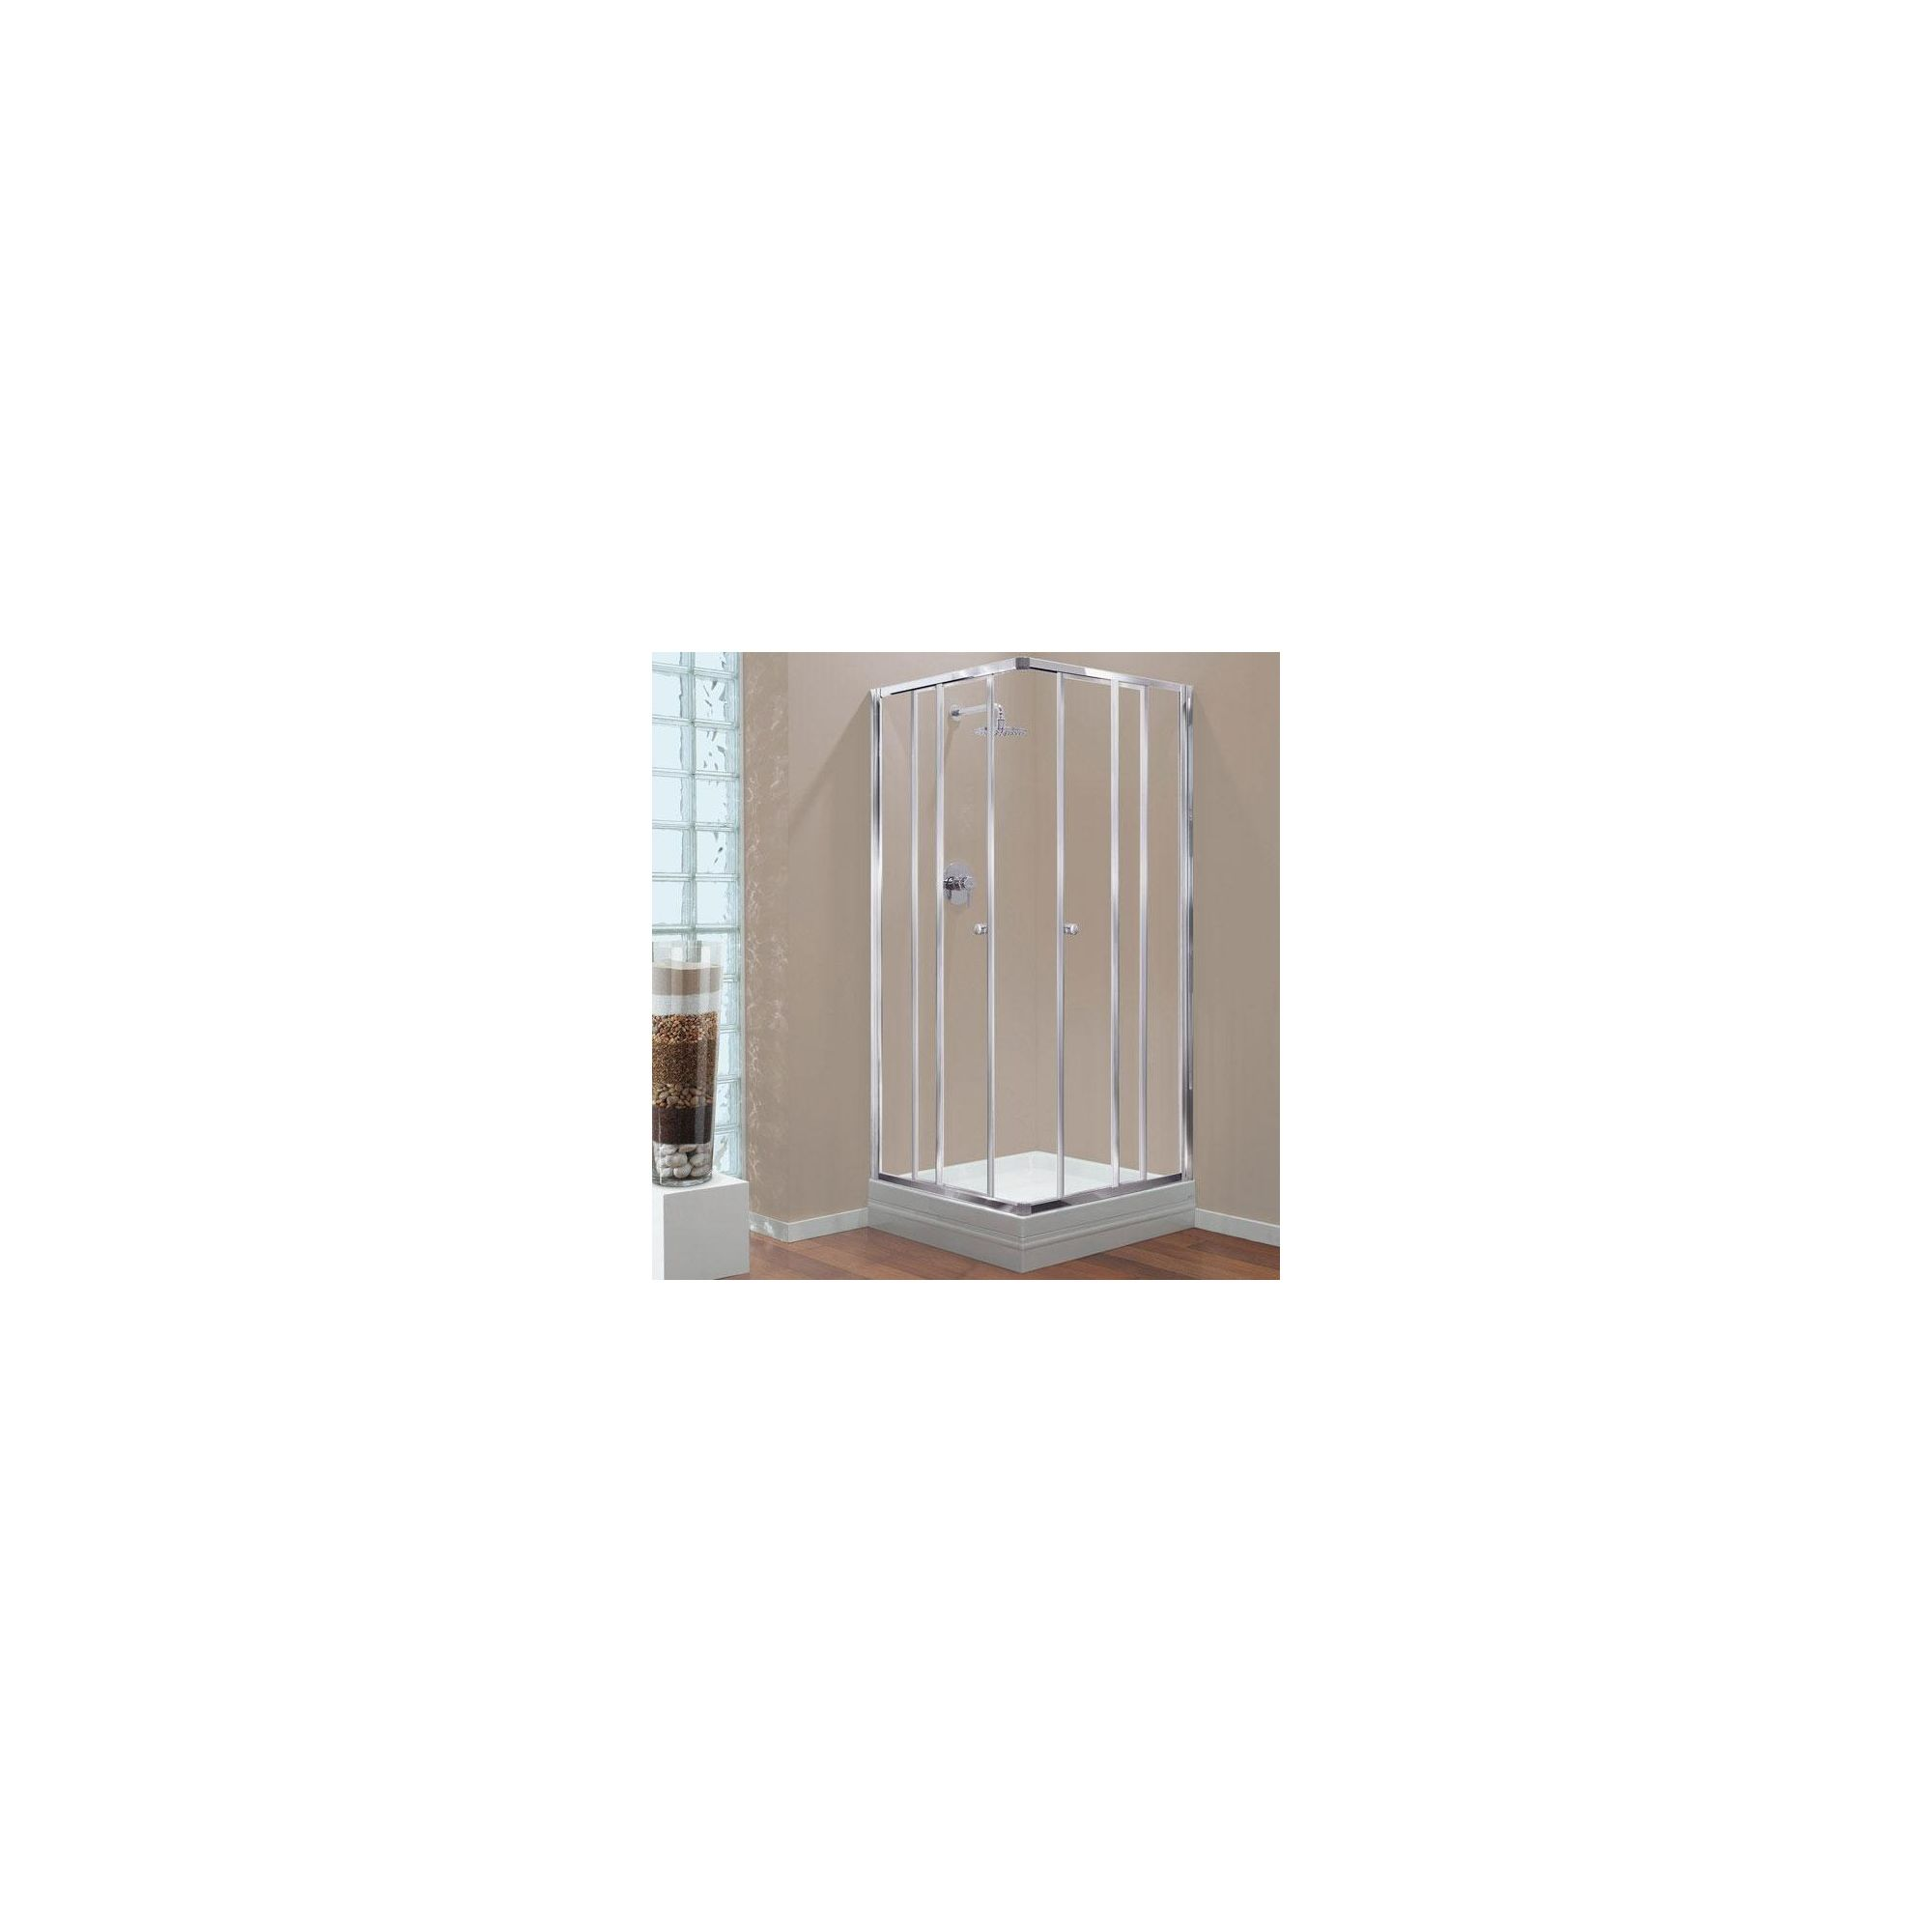 Coram GB Corner Entry Door Shower Enclosure, 900mm x 900mm, Standard Tray, 4mm Glass, Chrome Frame at Tesco Direct